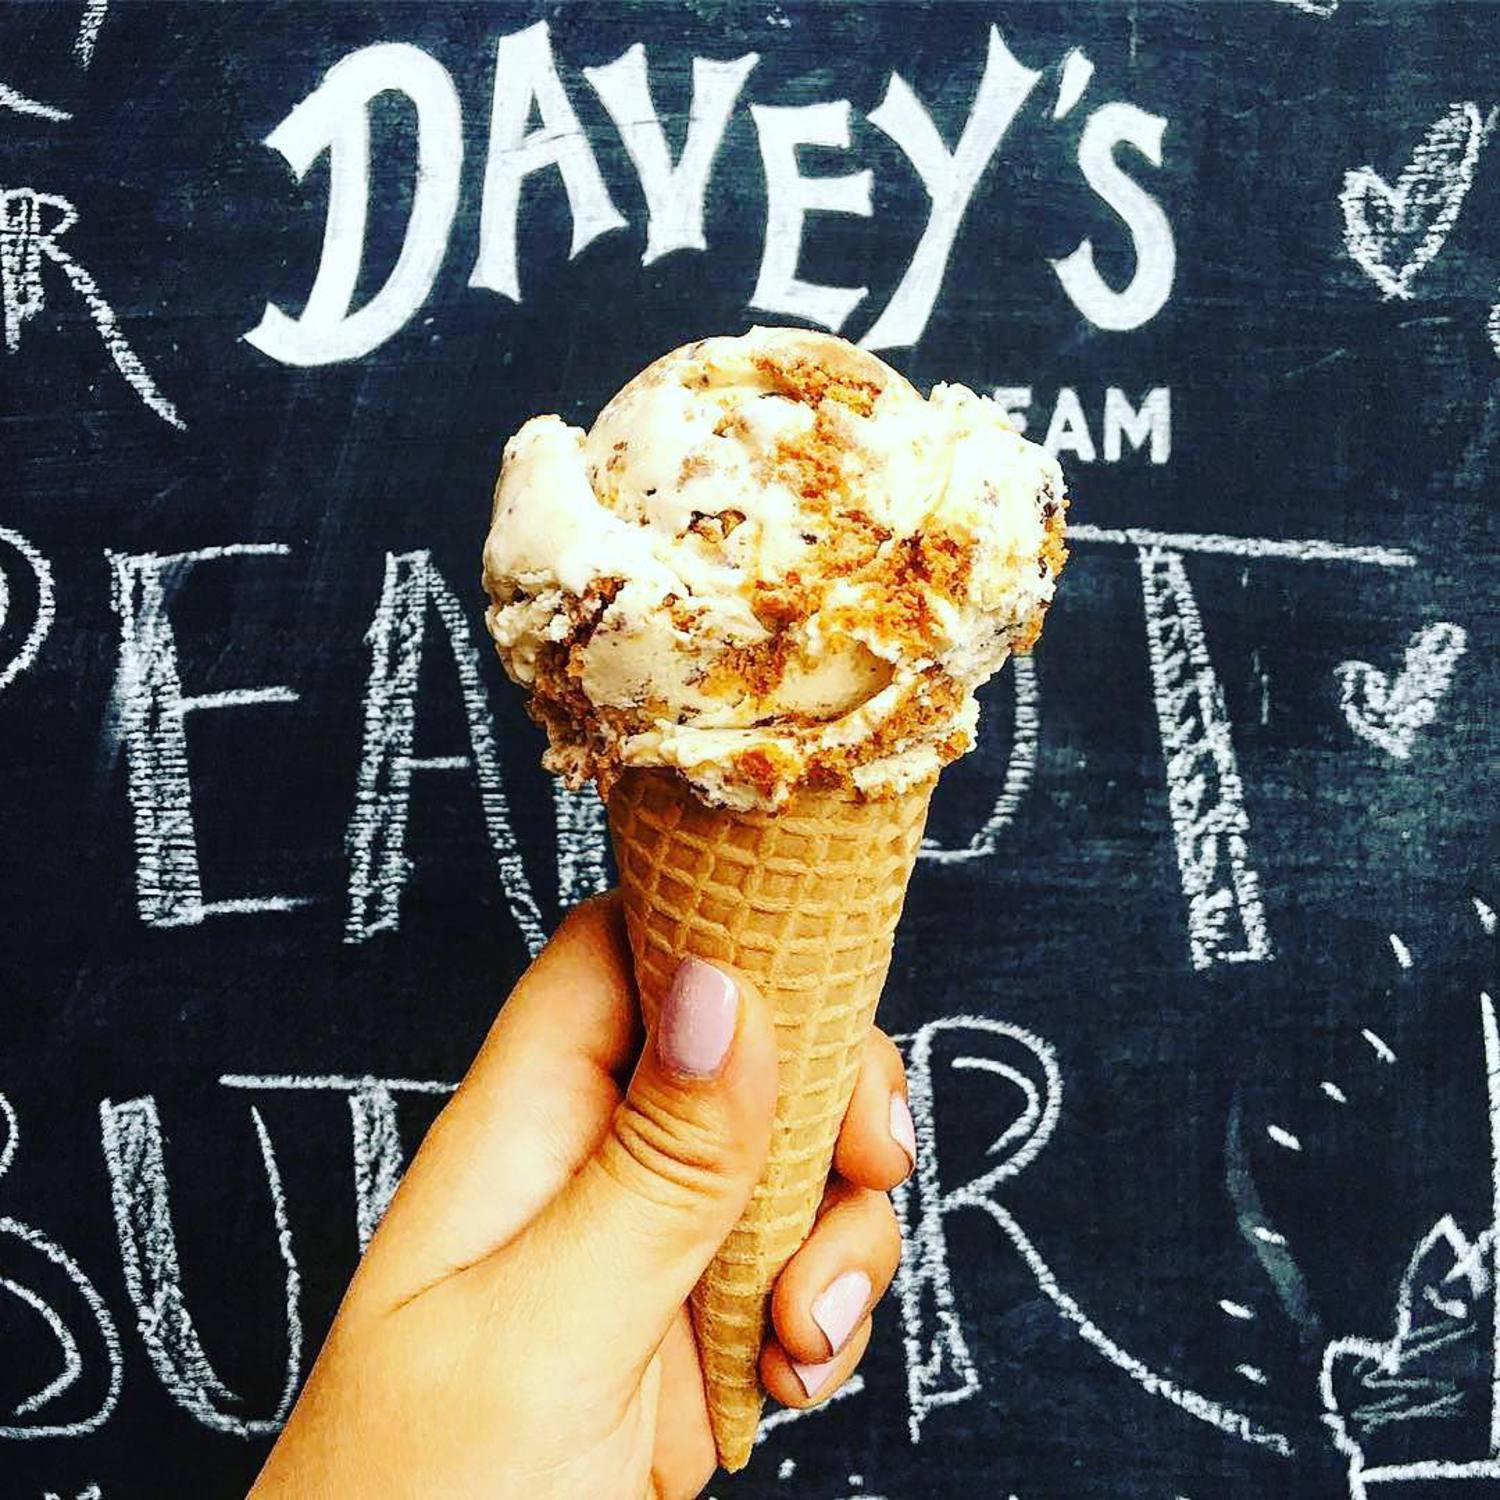 "We now return to our regularly scheduled programming... 😉😉😉 - 💬 ""Here's to a warm day in fall with a Speculoos ice cream from @daveysicecream! THIS WAS SO GOOD BTW."" #icecreamfam #fallhype #daveysicecream #williamsburg #nyc – 📸 Repost: @adelamou ✨✨✨"